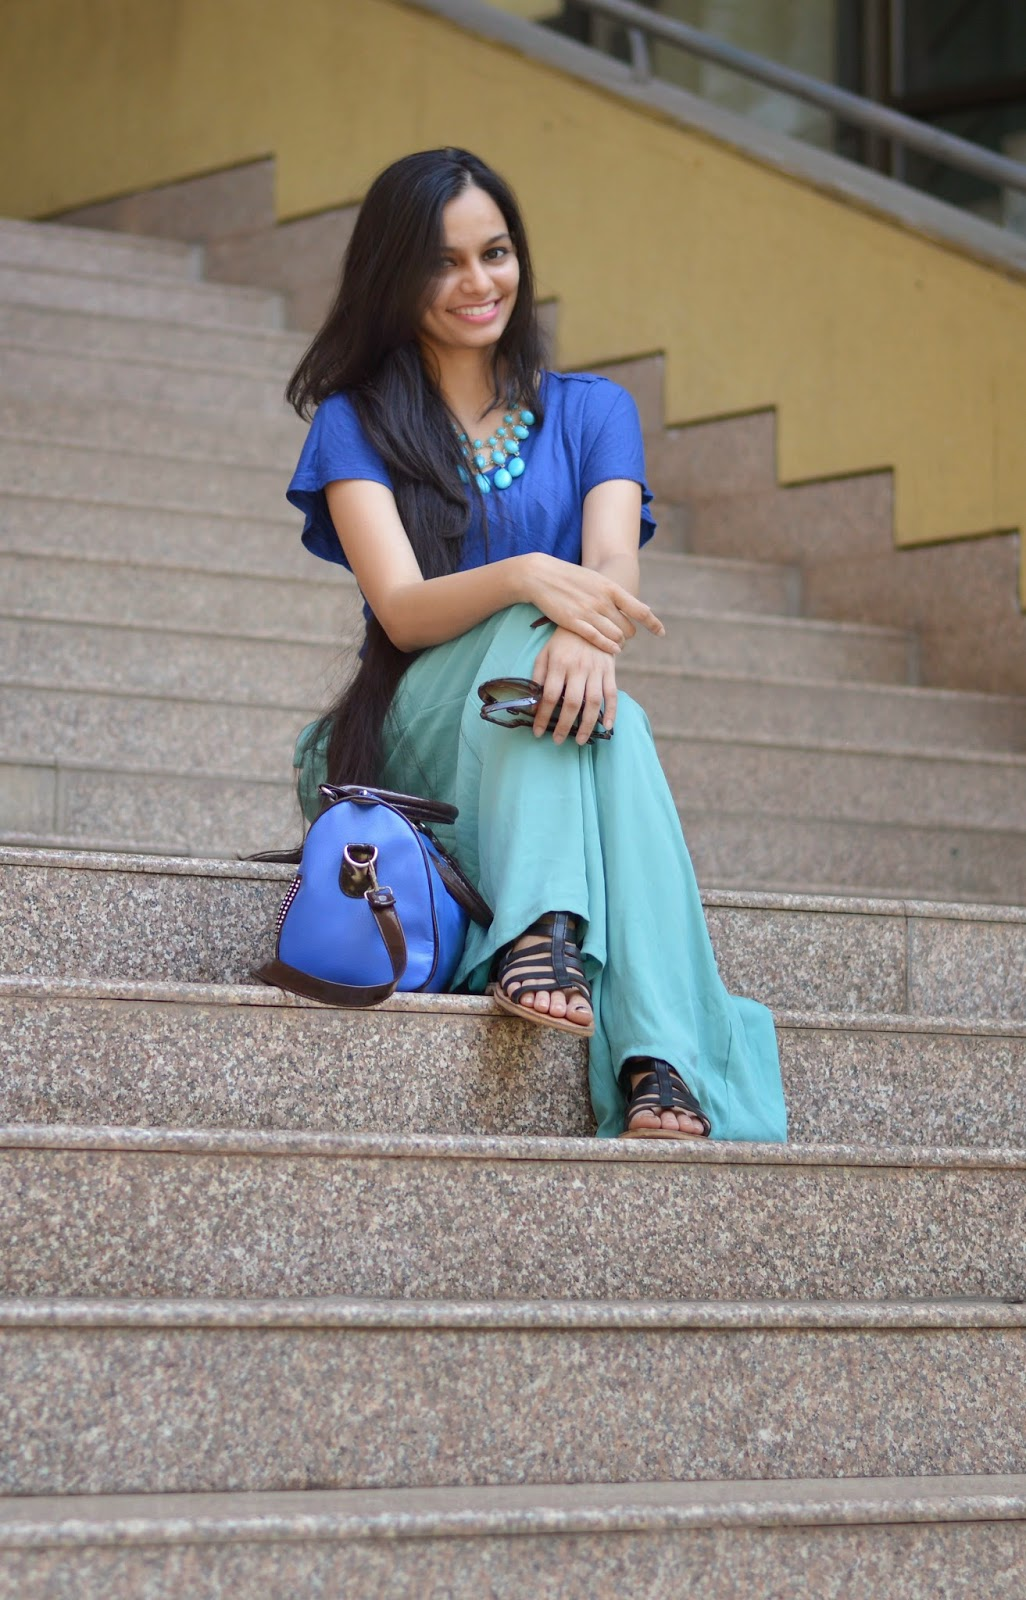 fashionatclick palazzo pants, royal blue lace insert top, gladiators, how to wear bright colors, mumbai street shopping, blue bag, how to wear palazzo pants, lace top, mumbai streetstyle, mumbai fashion blogger